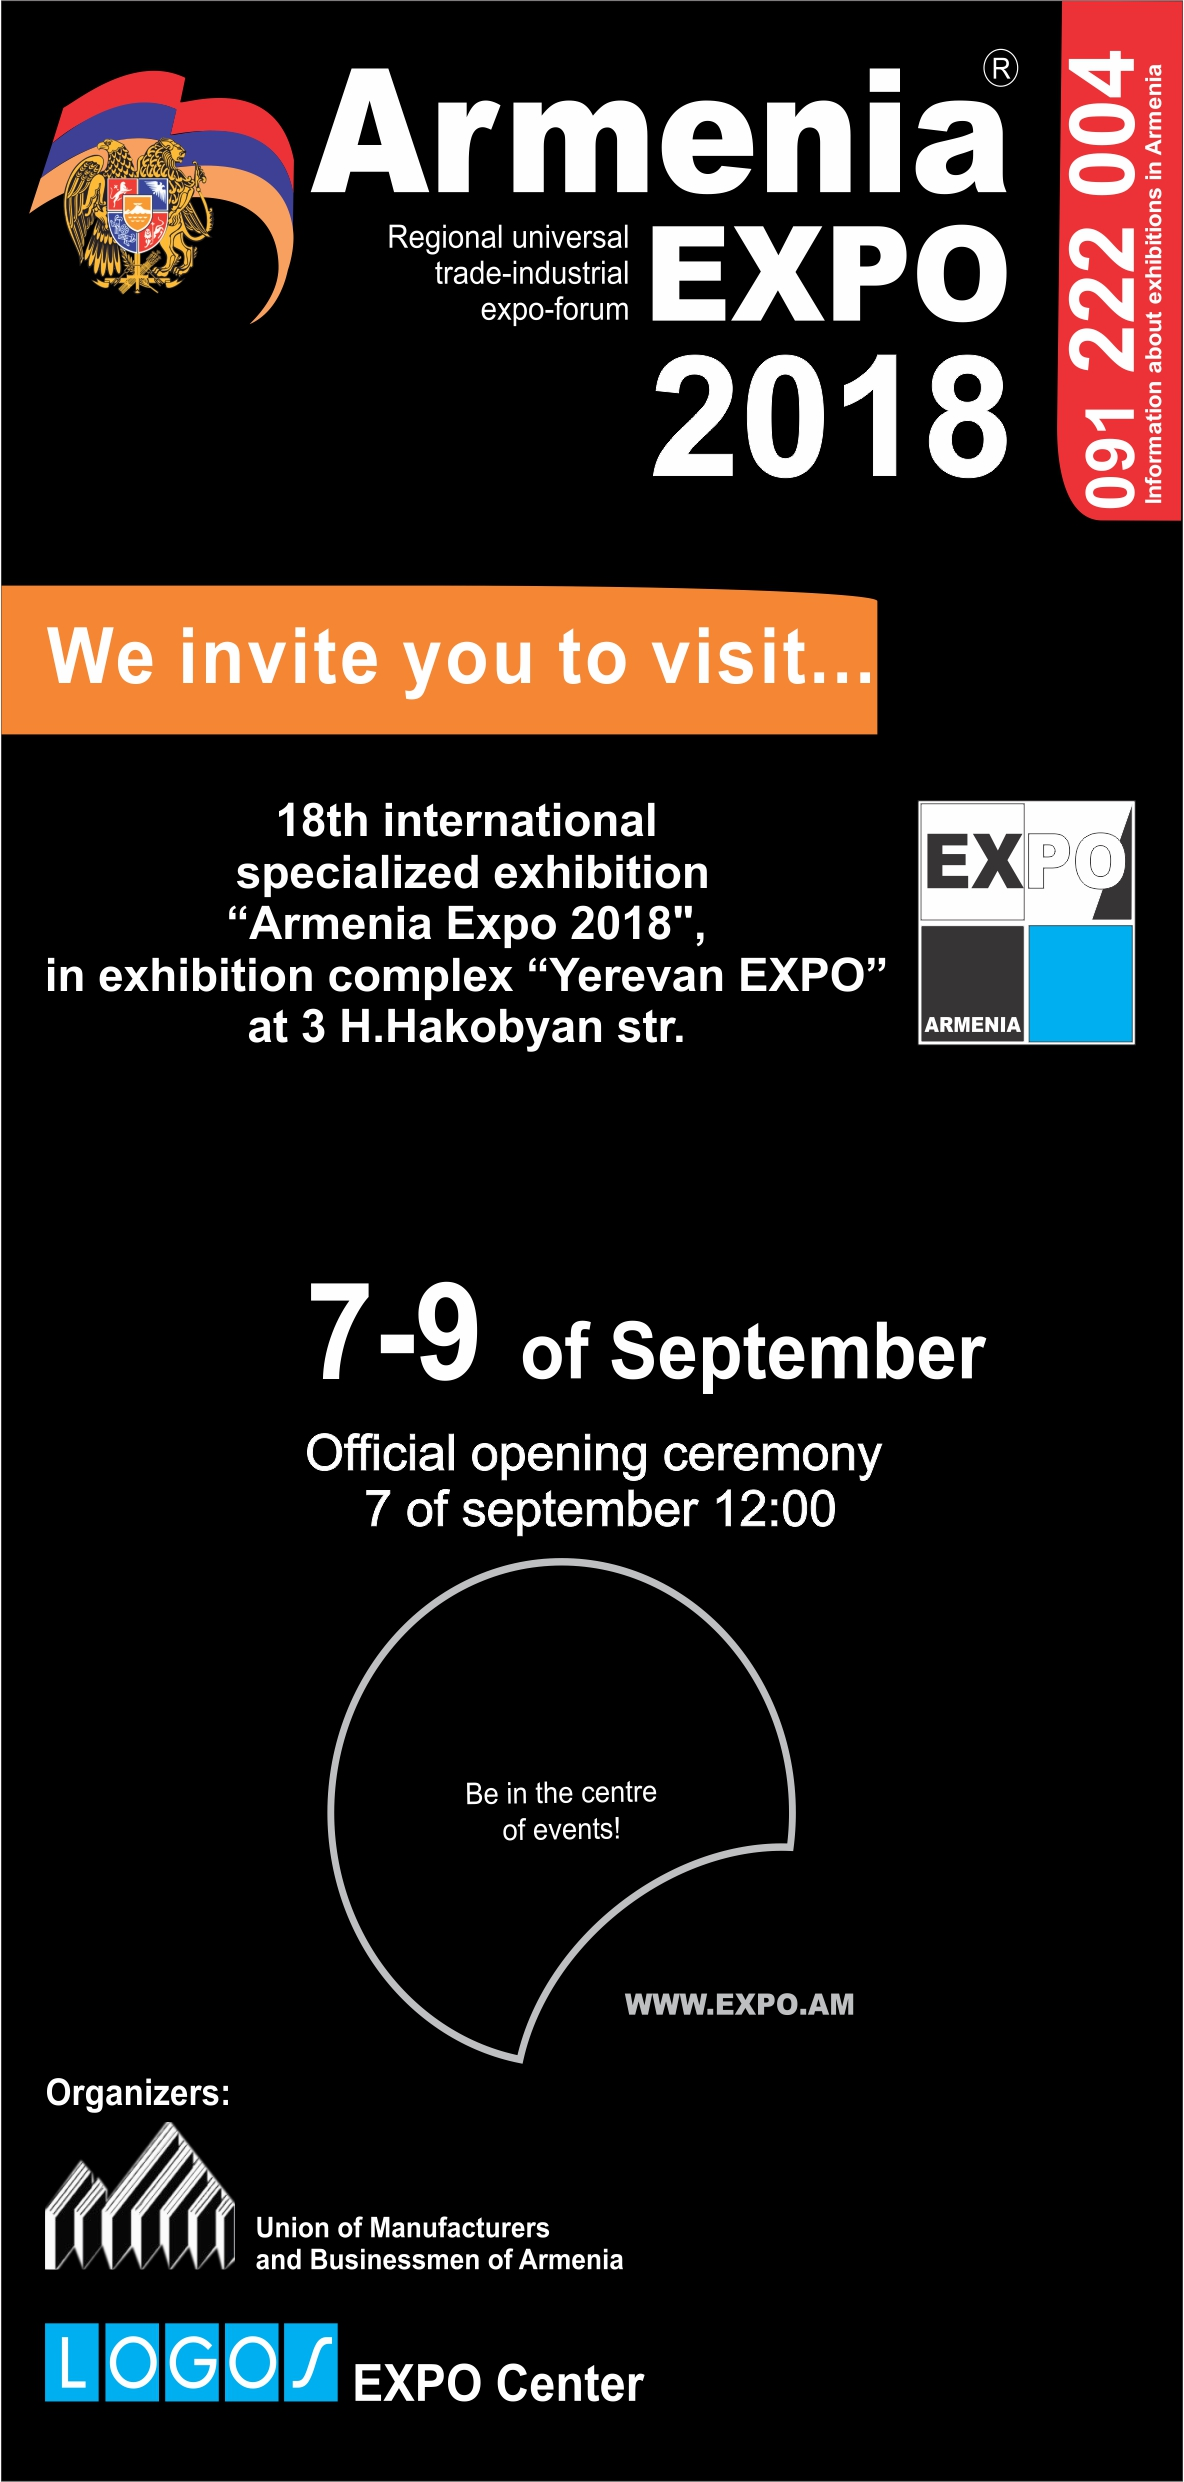 Armenia expo 2018 expo invitation card in the exhibition stopboris